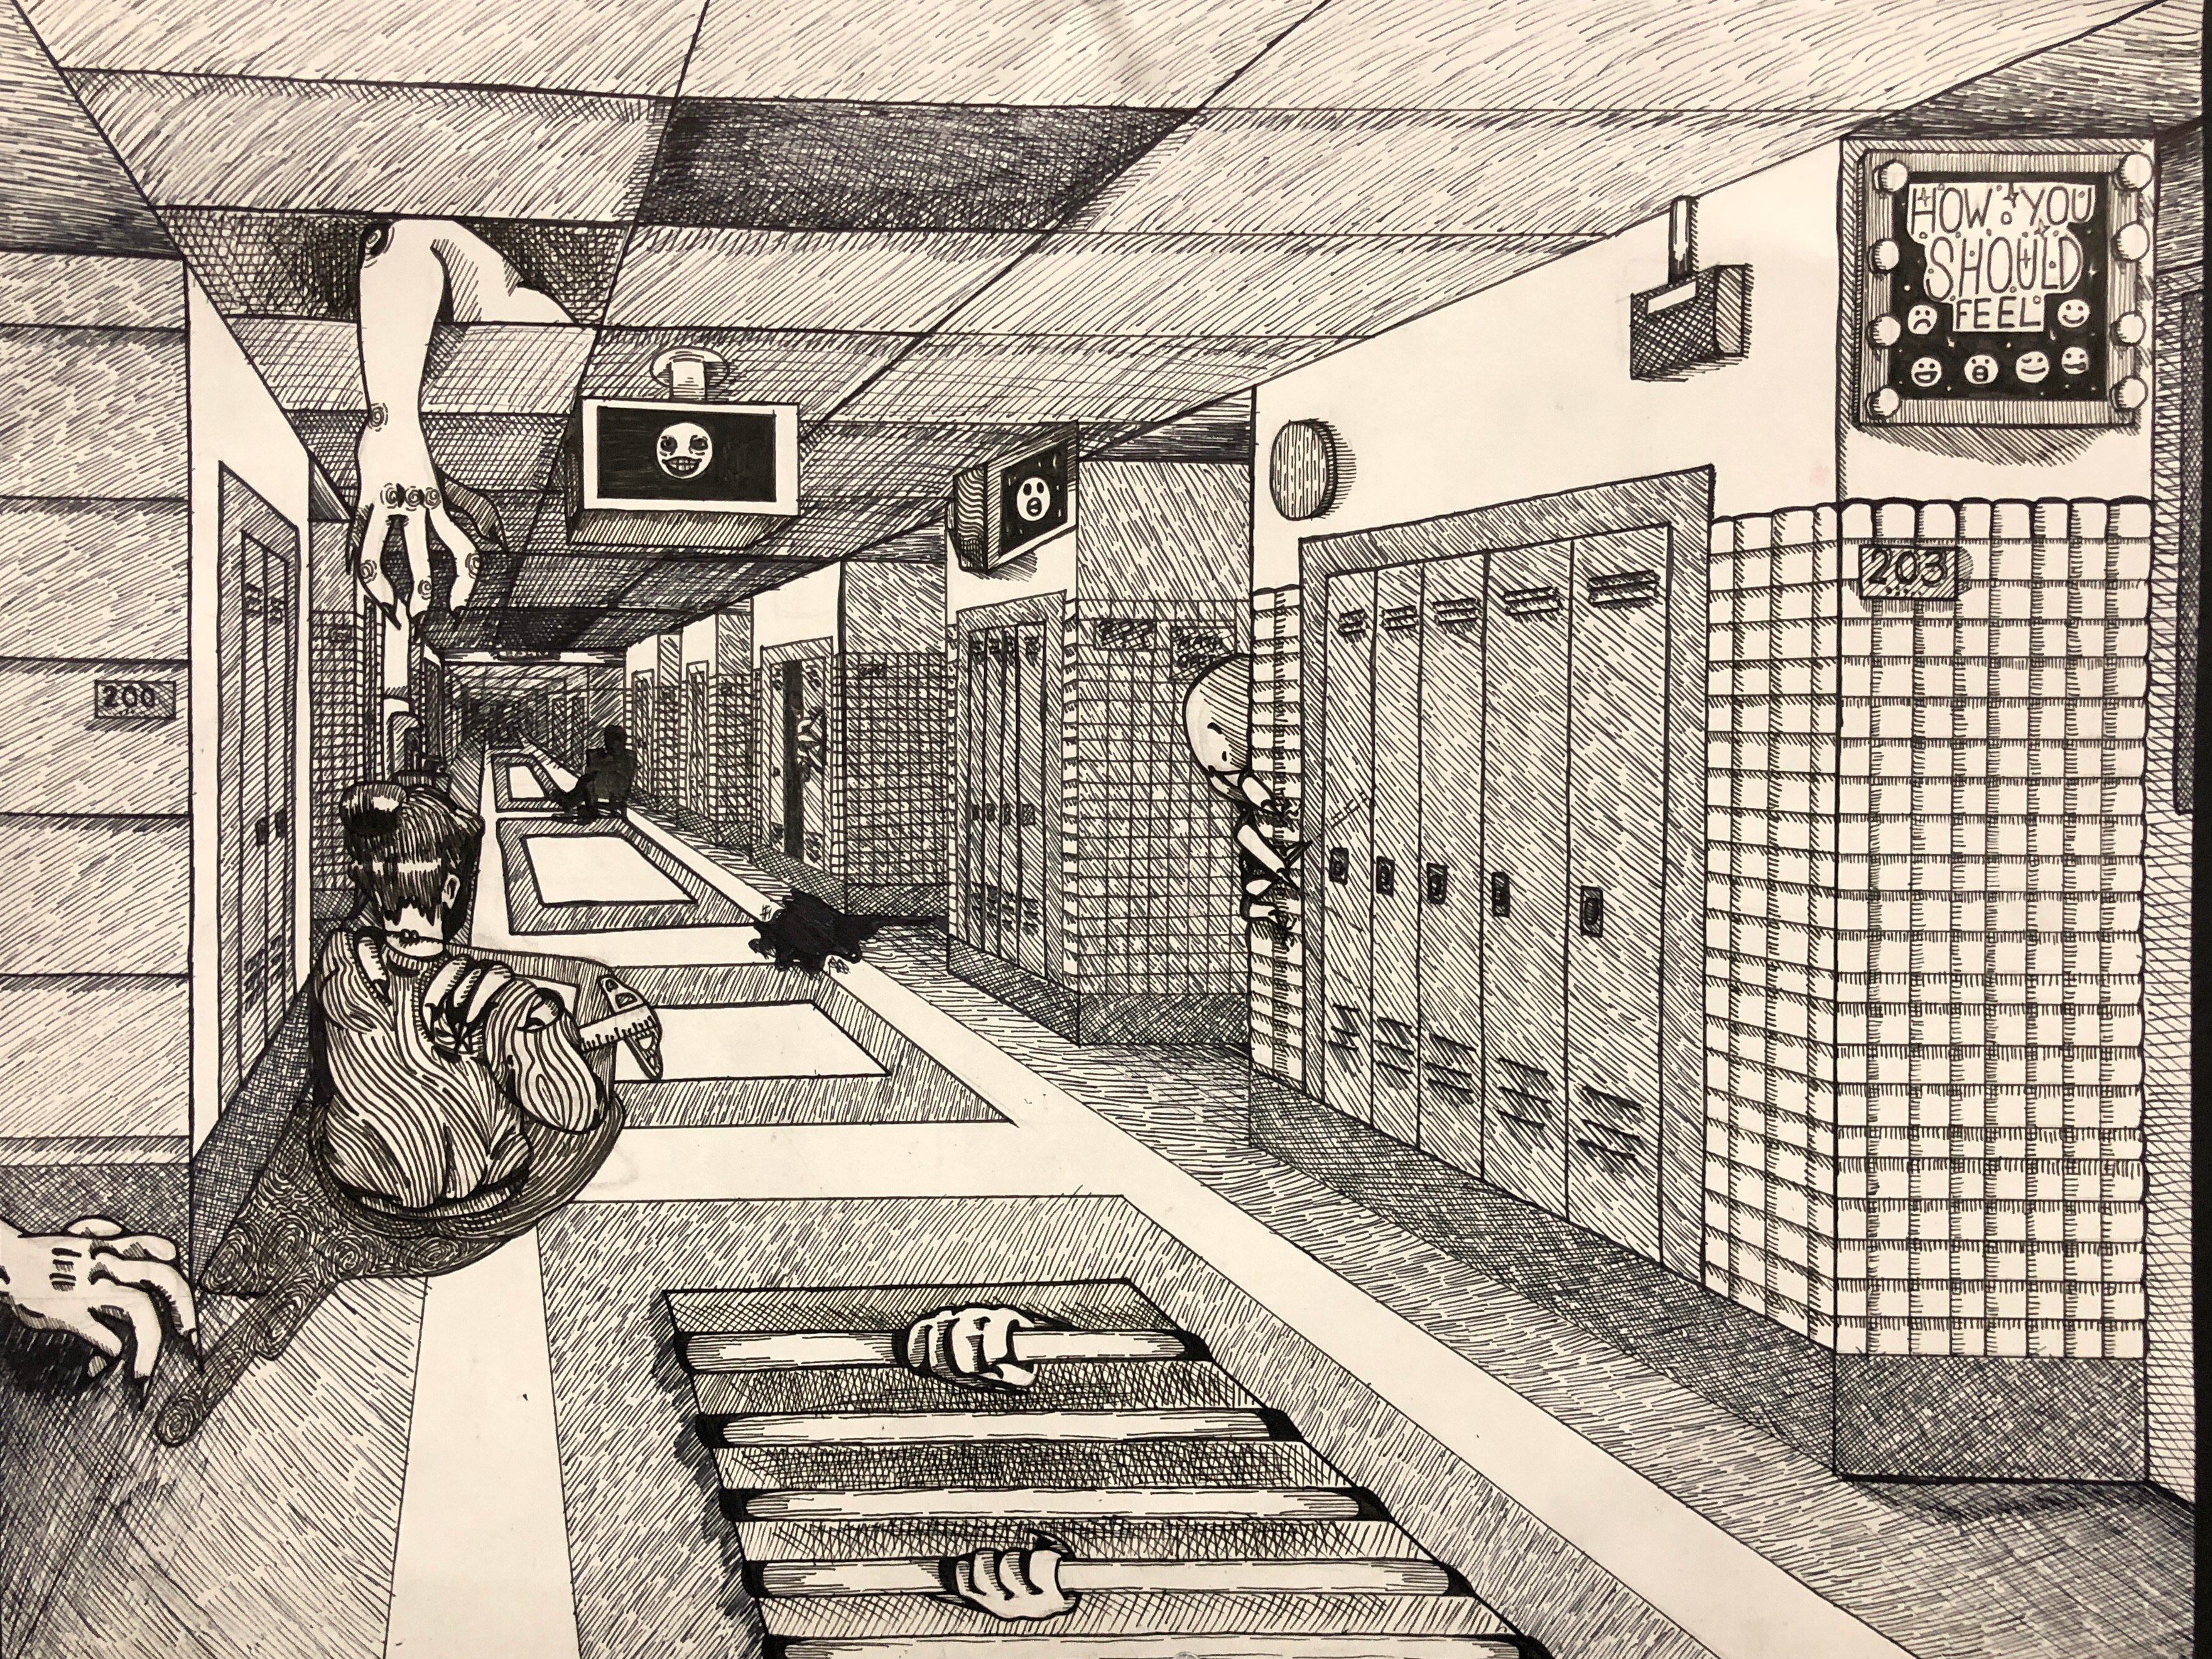 Art 2: Altered Hallway in 1 Point Perspective